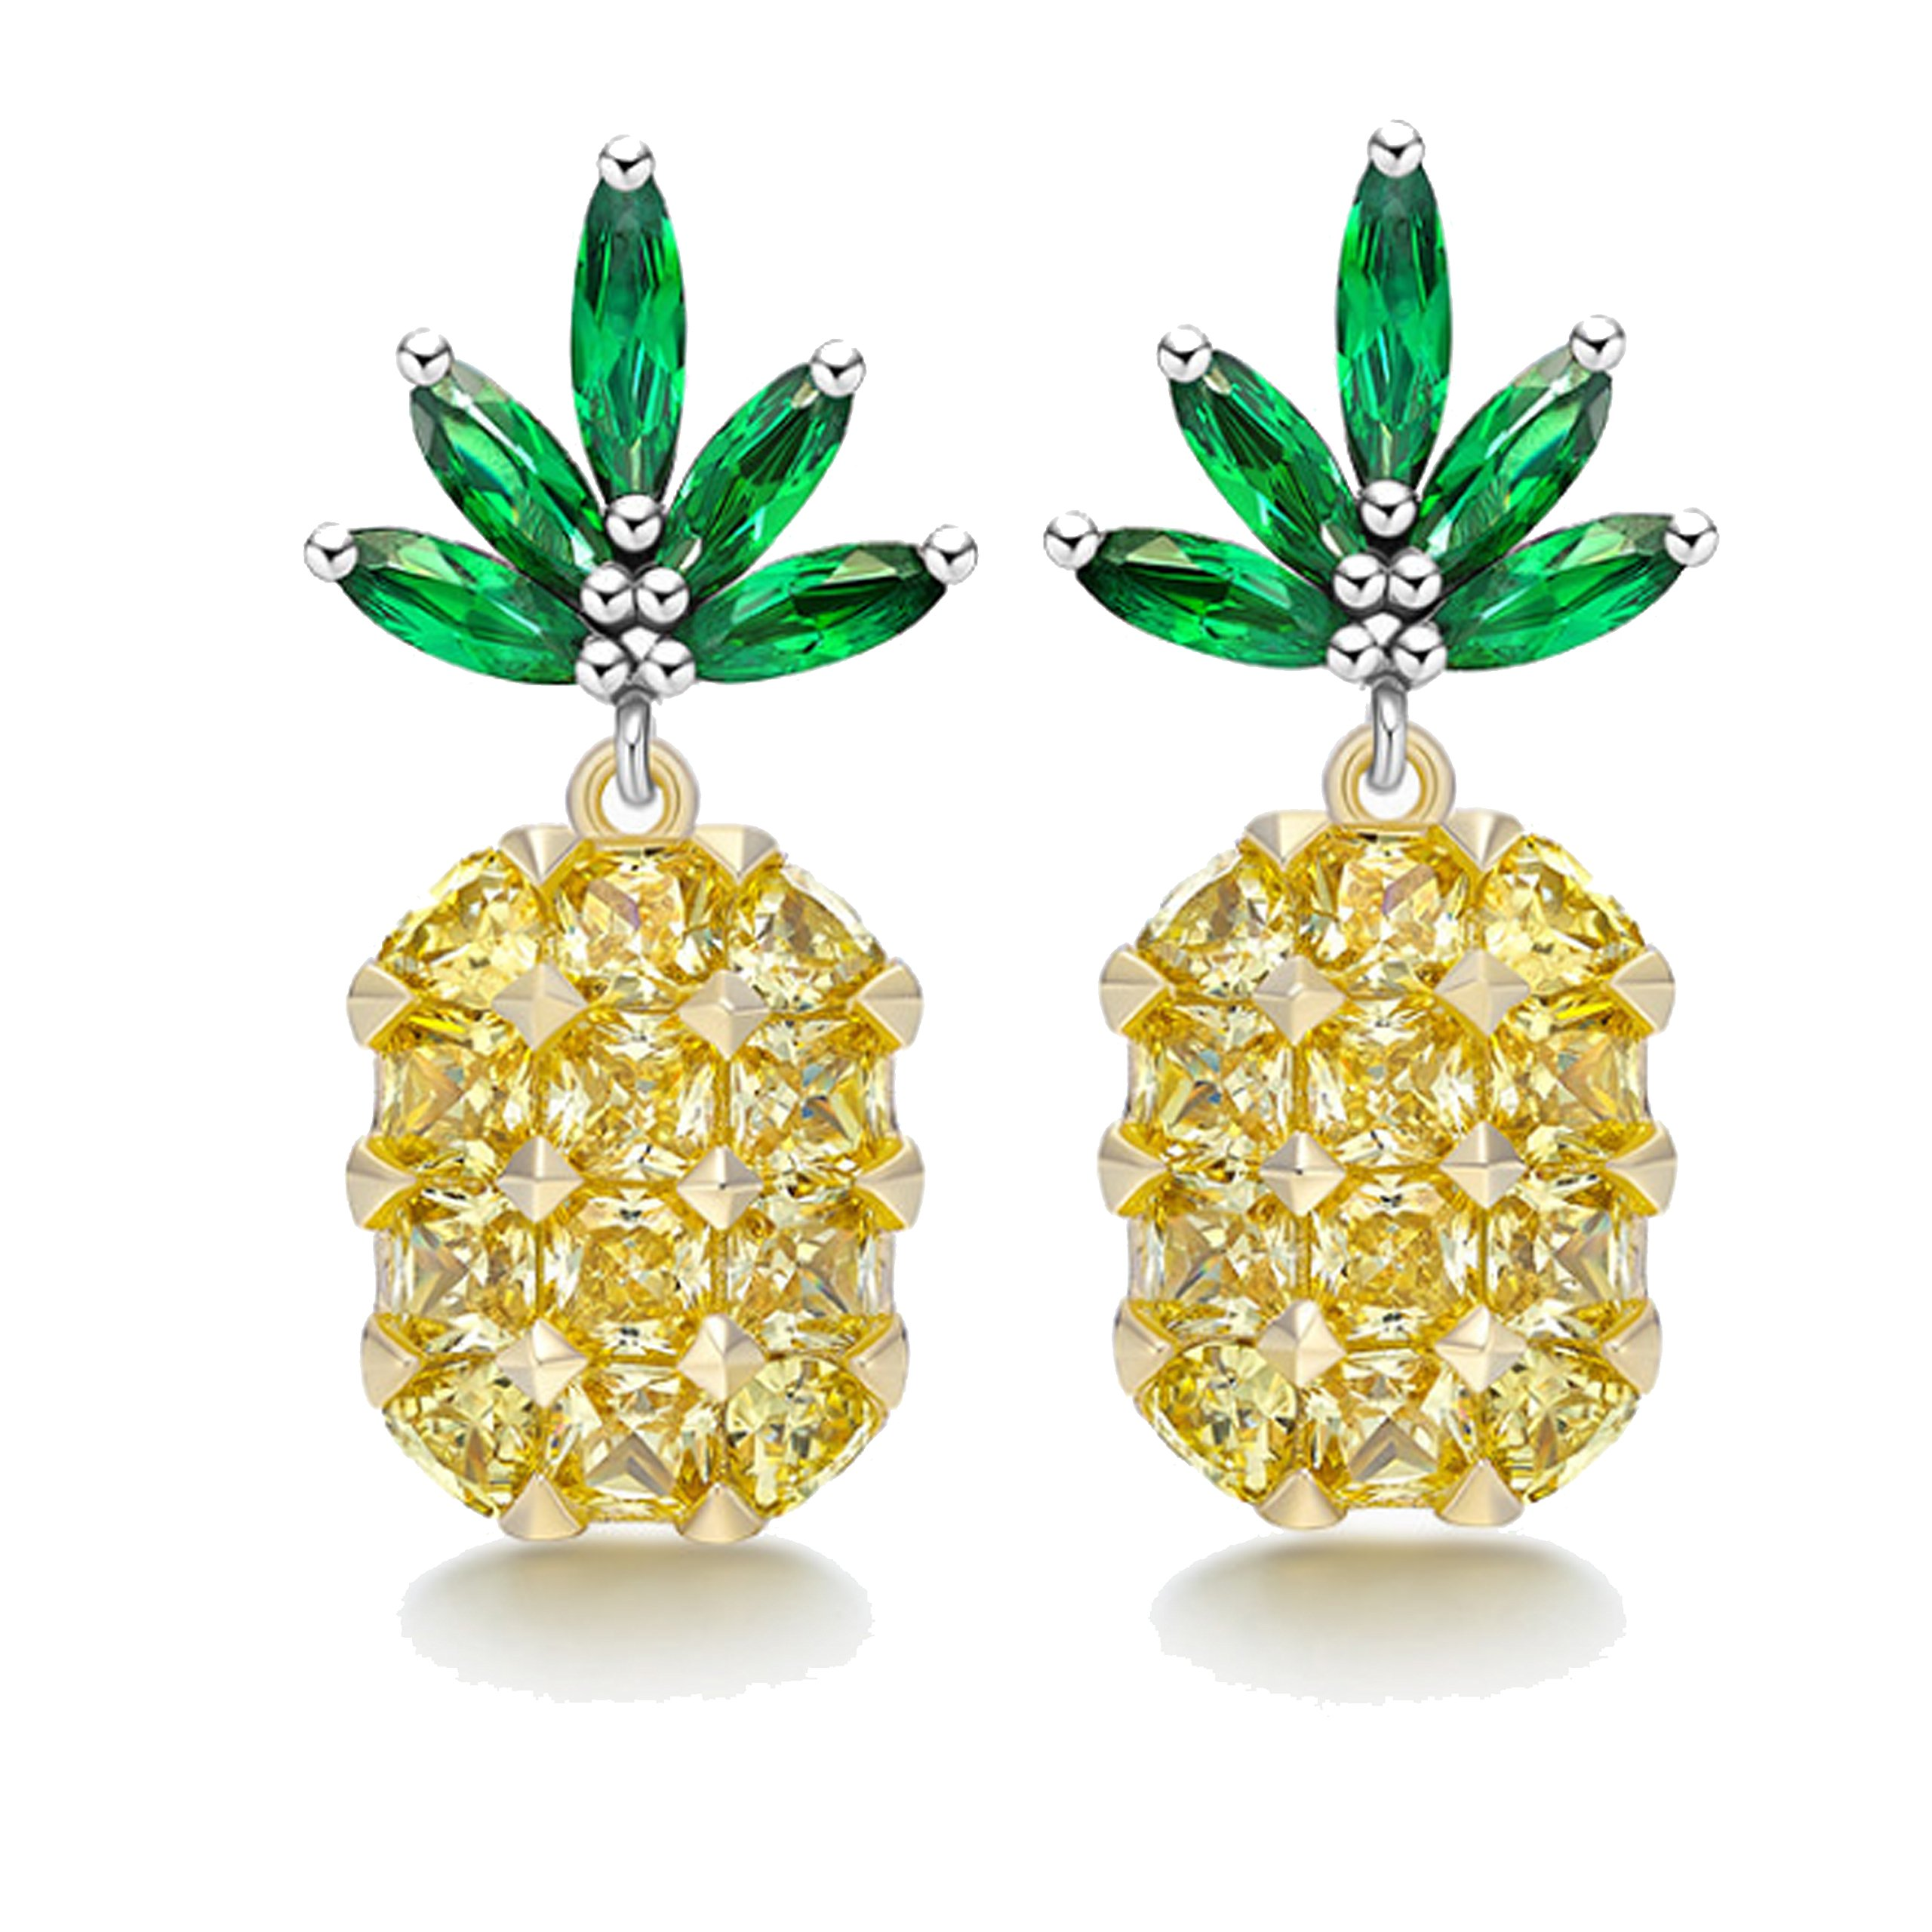 Zirconia inlay Fruit Pave Pineapple Stud Earrings by HI-YOU HOME (Shiny pineapple)